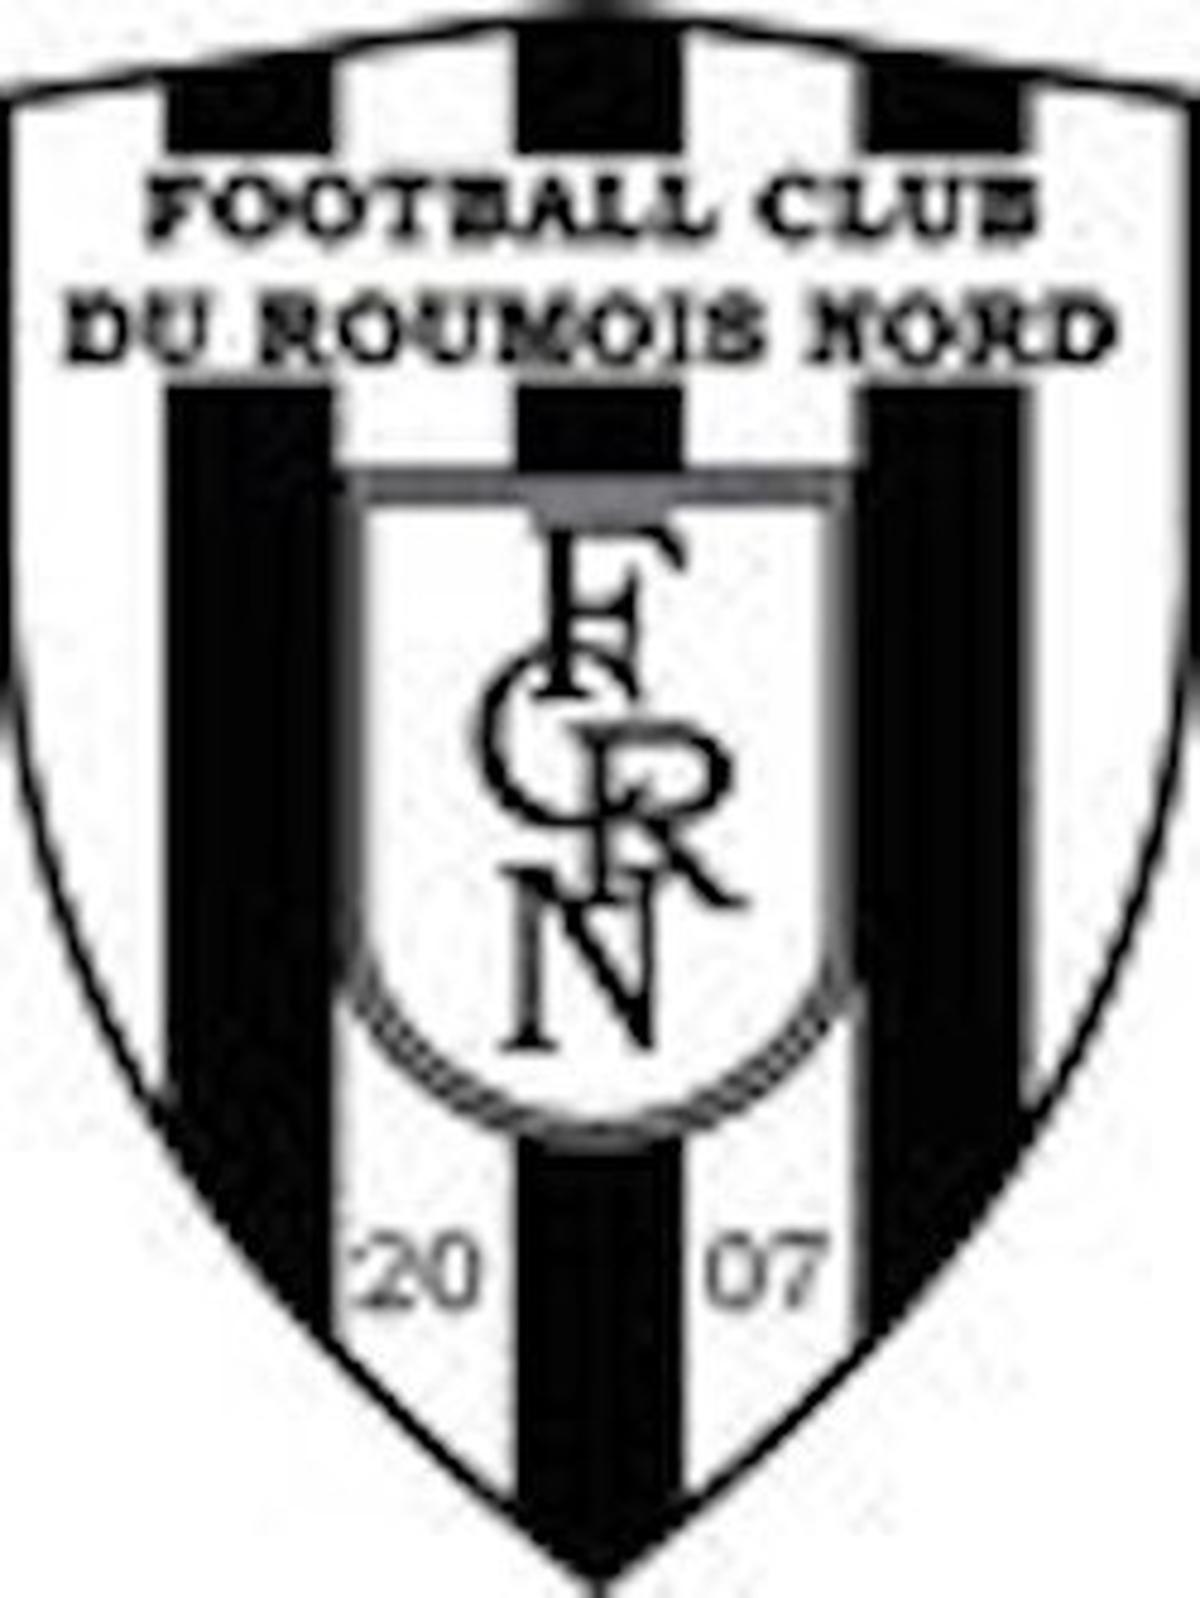 FC ROUMOIS NORD